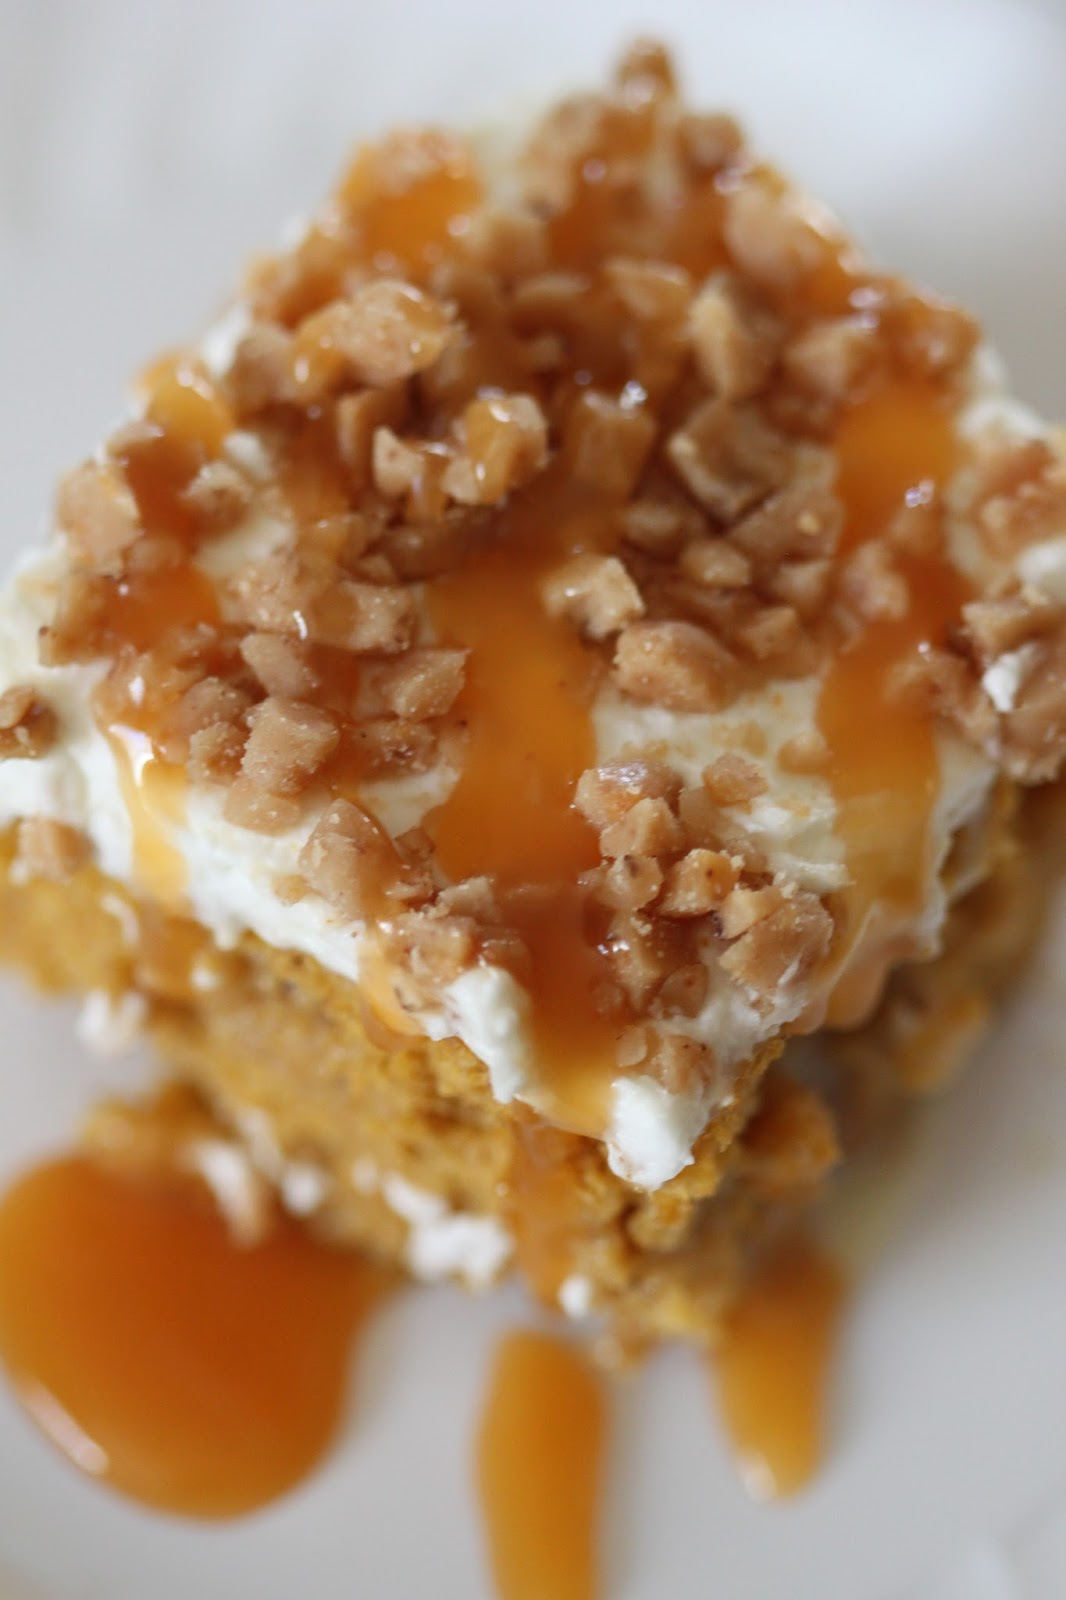 Aug 26,  · This is a showstopper of a pumpkin cake. It's a ridiculously easy cake that starts with a boxed mix of spice cake, a can of pumpkin puree, and pumpkin pie spice. A mixture of sweetened condensed milk and caramel sundae topping is poured over holes you poke in the cake after perawan-tante.tkgs: 1.